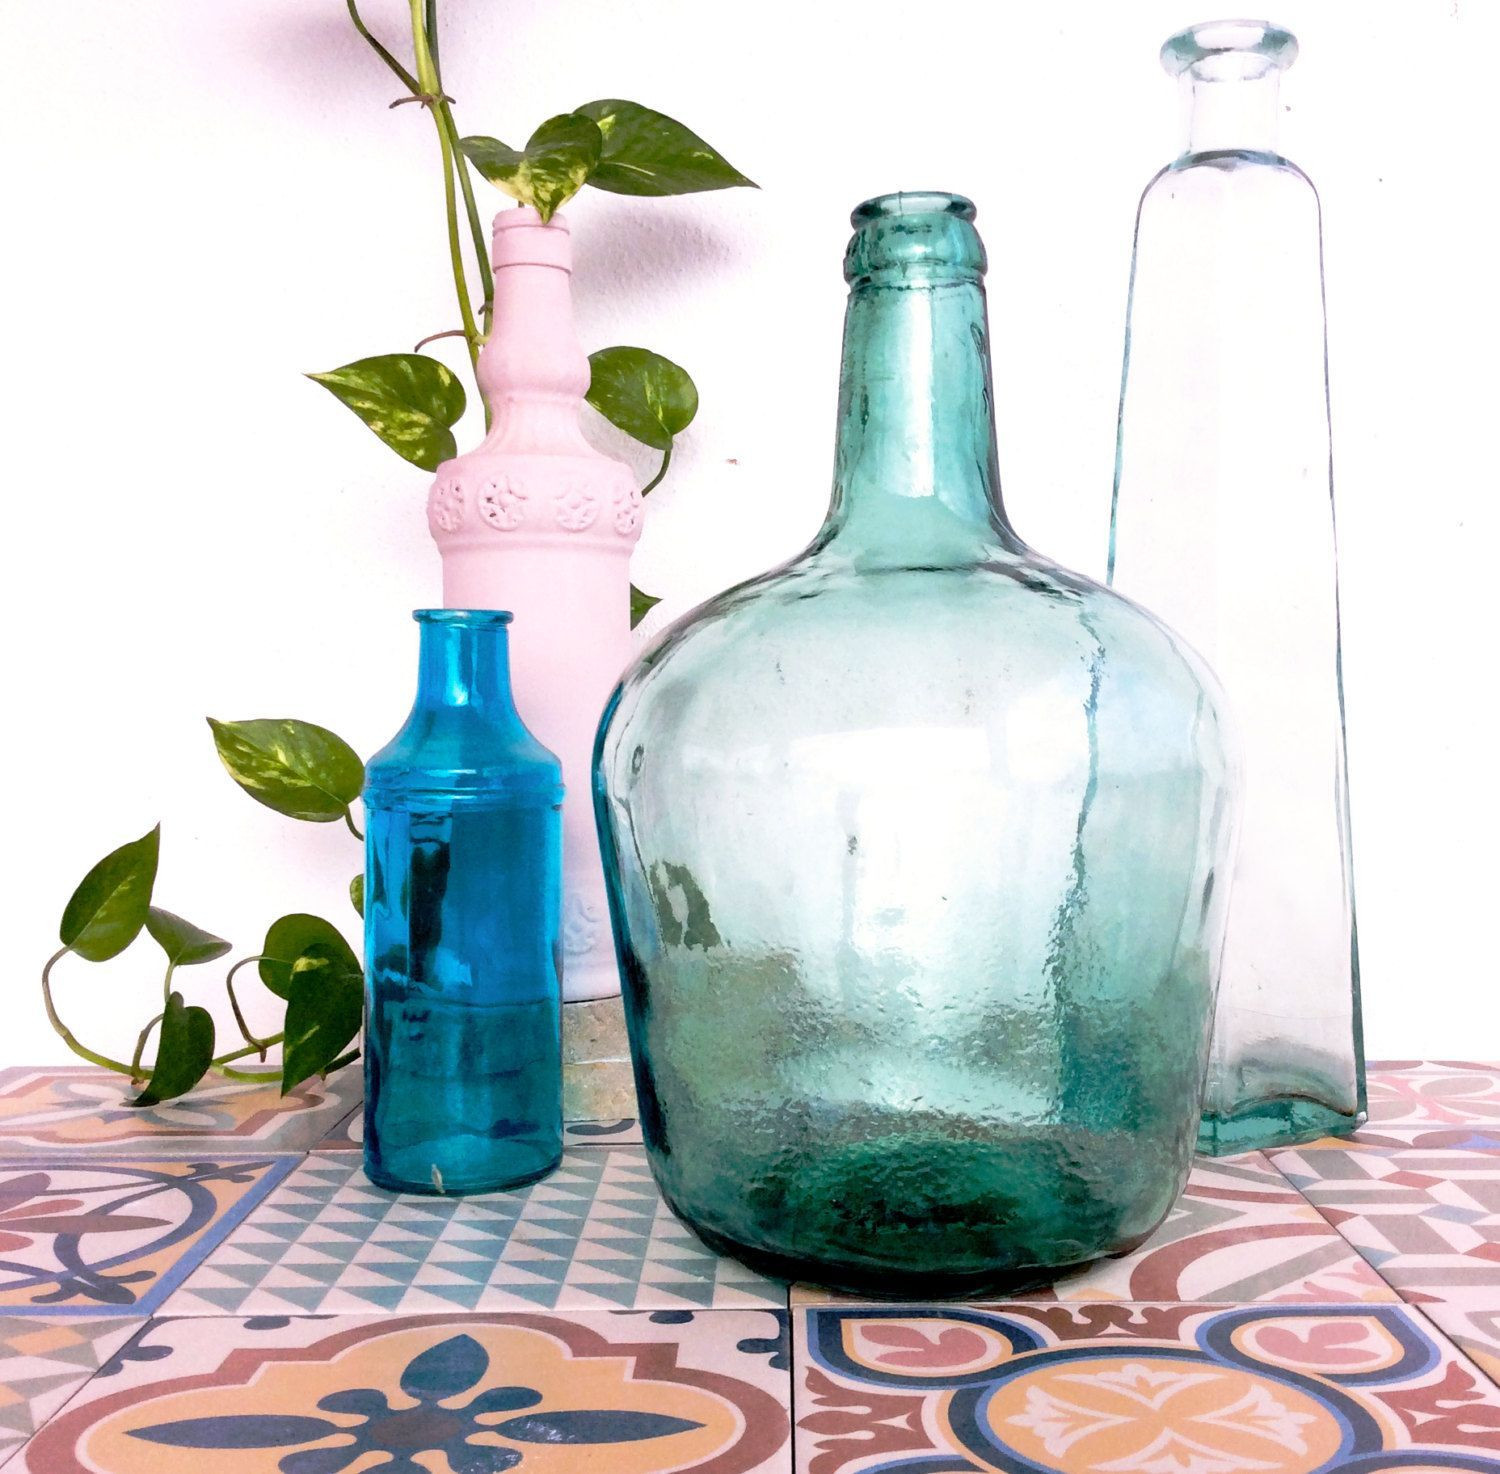 Tiffany and Co Glass Vase Of 35 Antique Green Glass Vases the Weekly World with Regard to Vintage Viresa Demijohn Green Glass Bottle From Spain by Noaparis